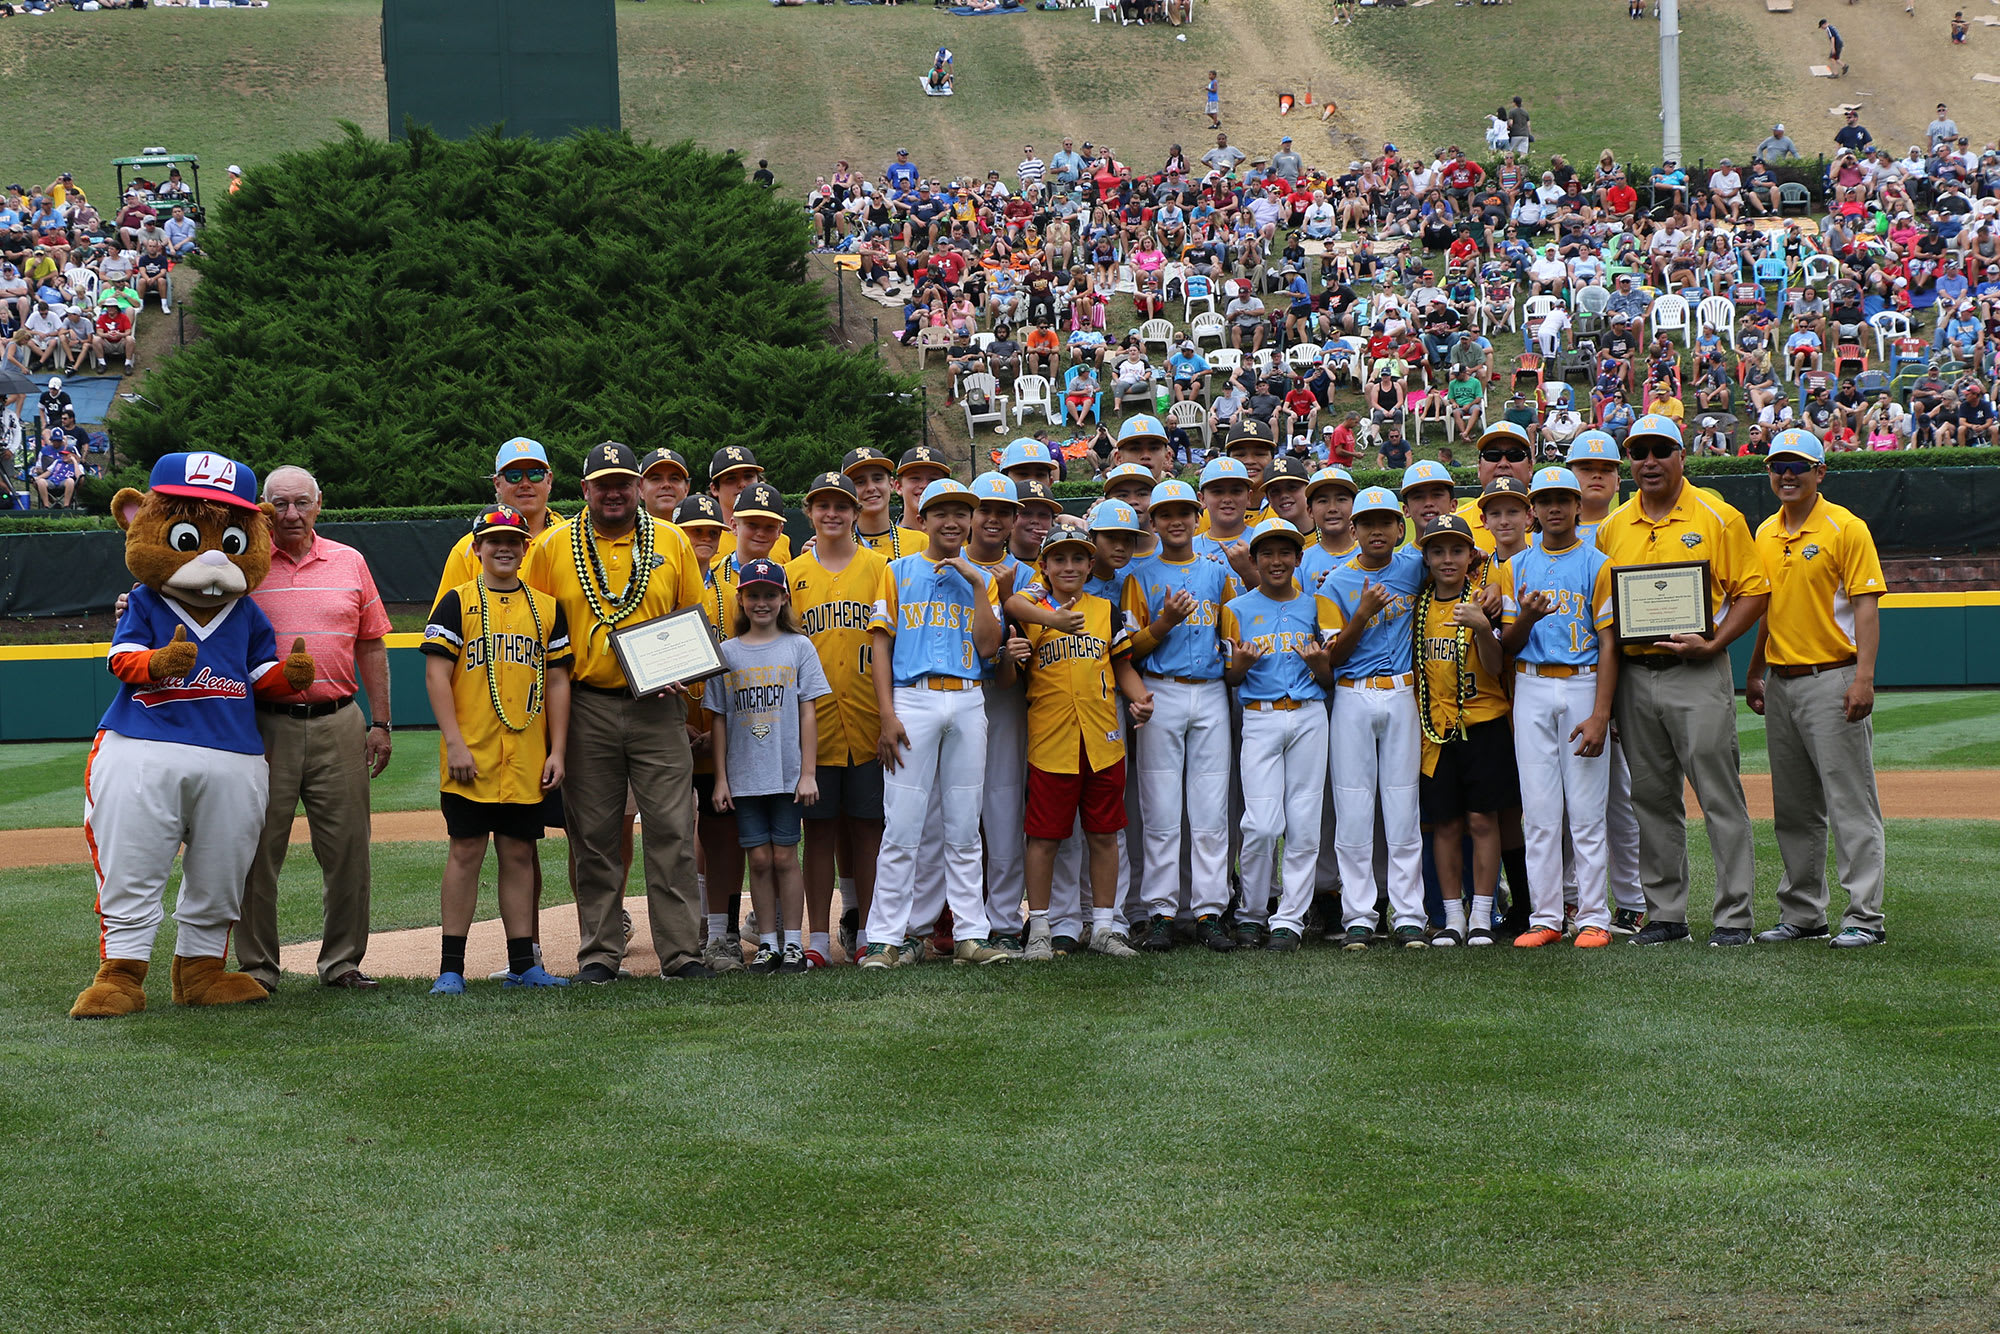 41e8fff0d Both teams exemplify the values and sportsmanship of Little League Baseball  and Softball.